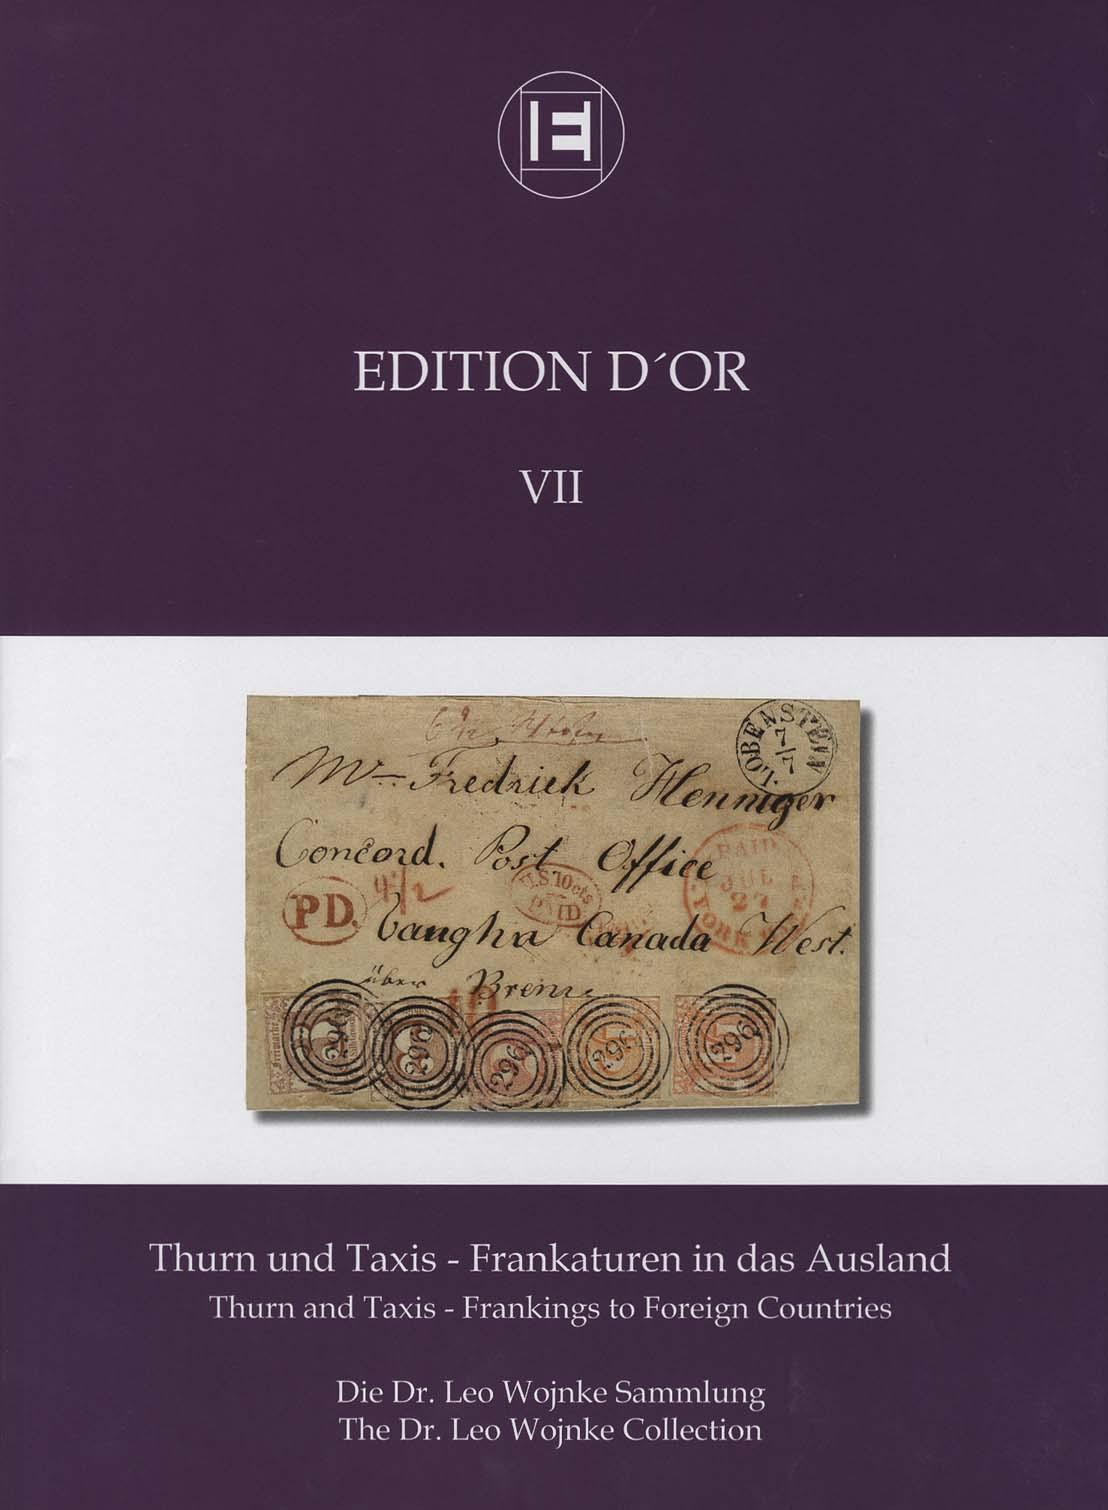 Vol. 7: Thurn and Taxis - Frankings to Foreign Countries • The Dr. Leo Wojnke Collection